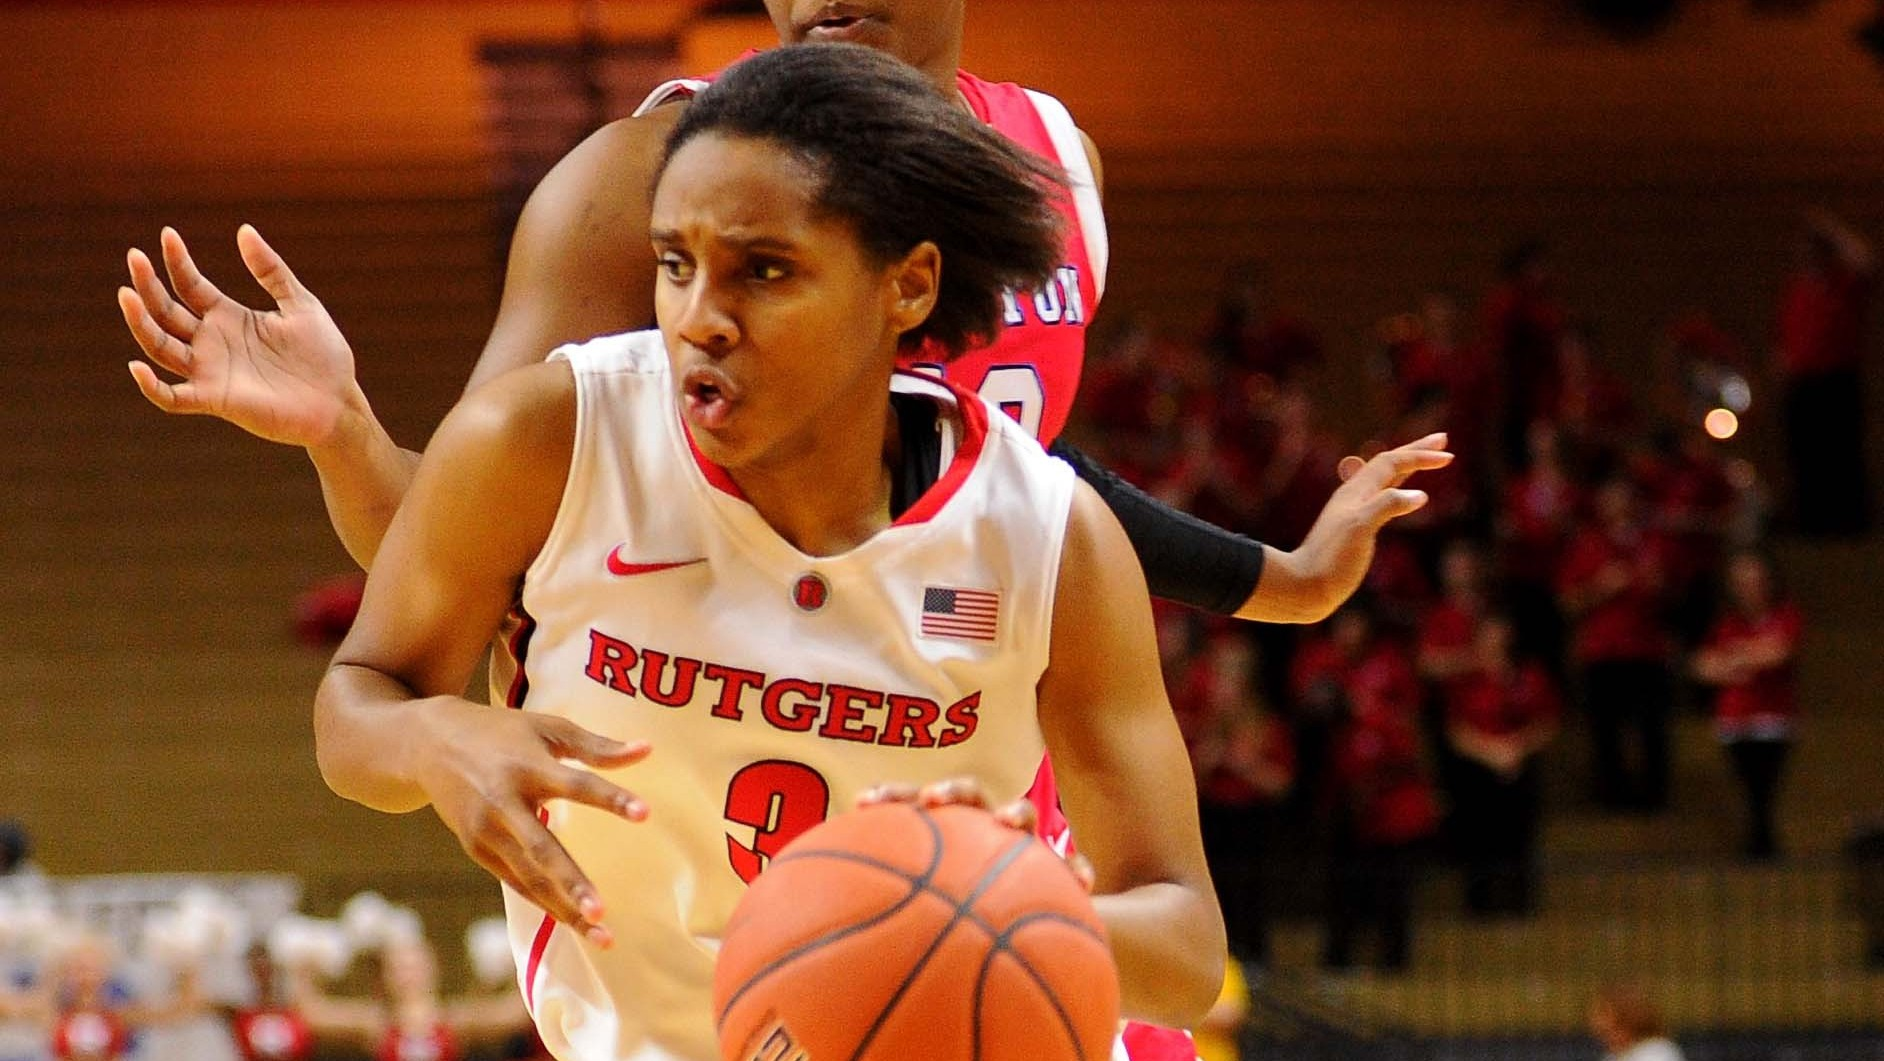 Rutgers defeats Seton Hall in battle of old conference foes, 79-66